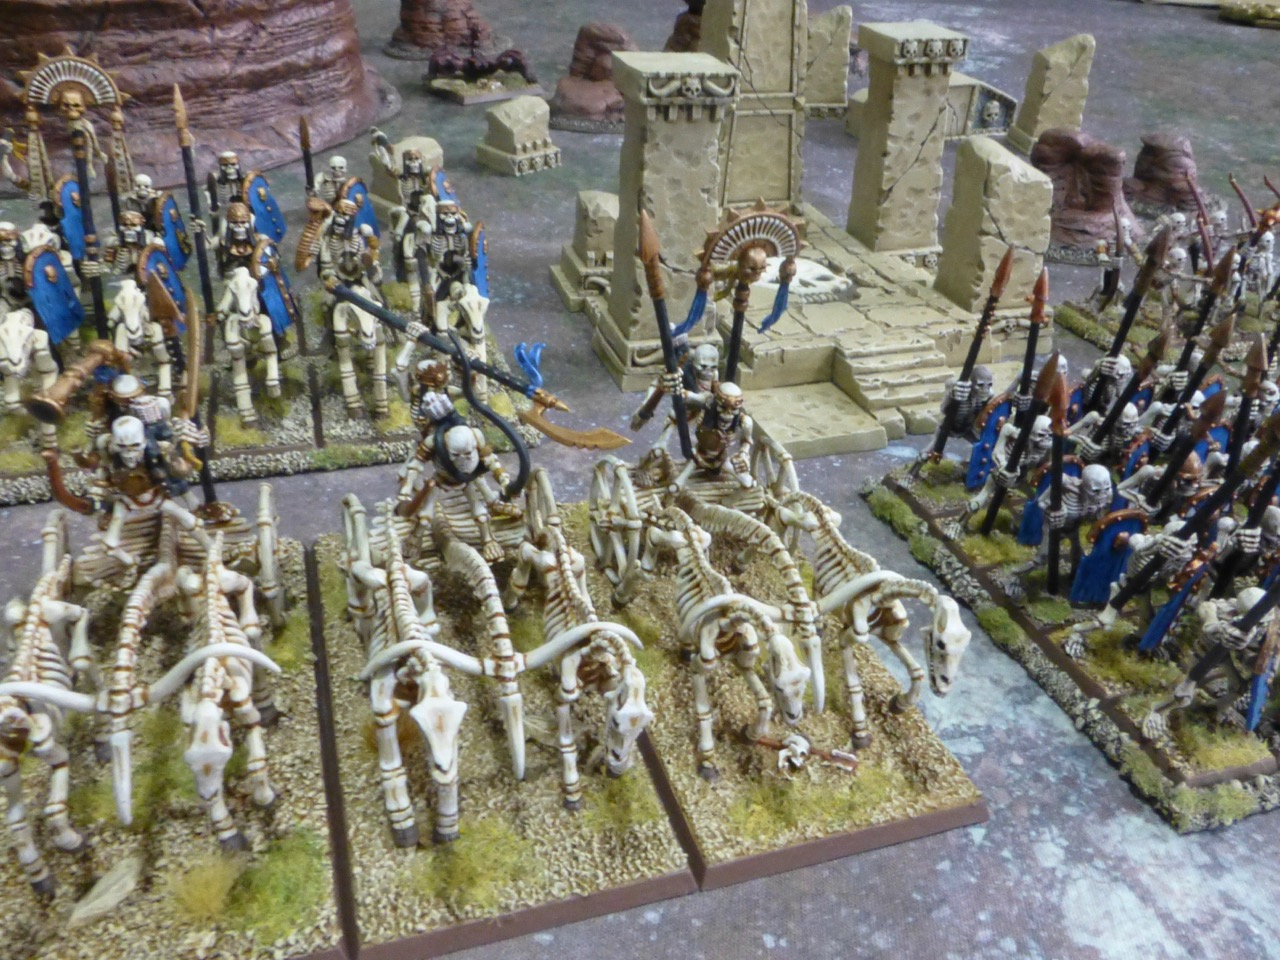 Chariots and cavalry advancing next to the spearmen